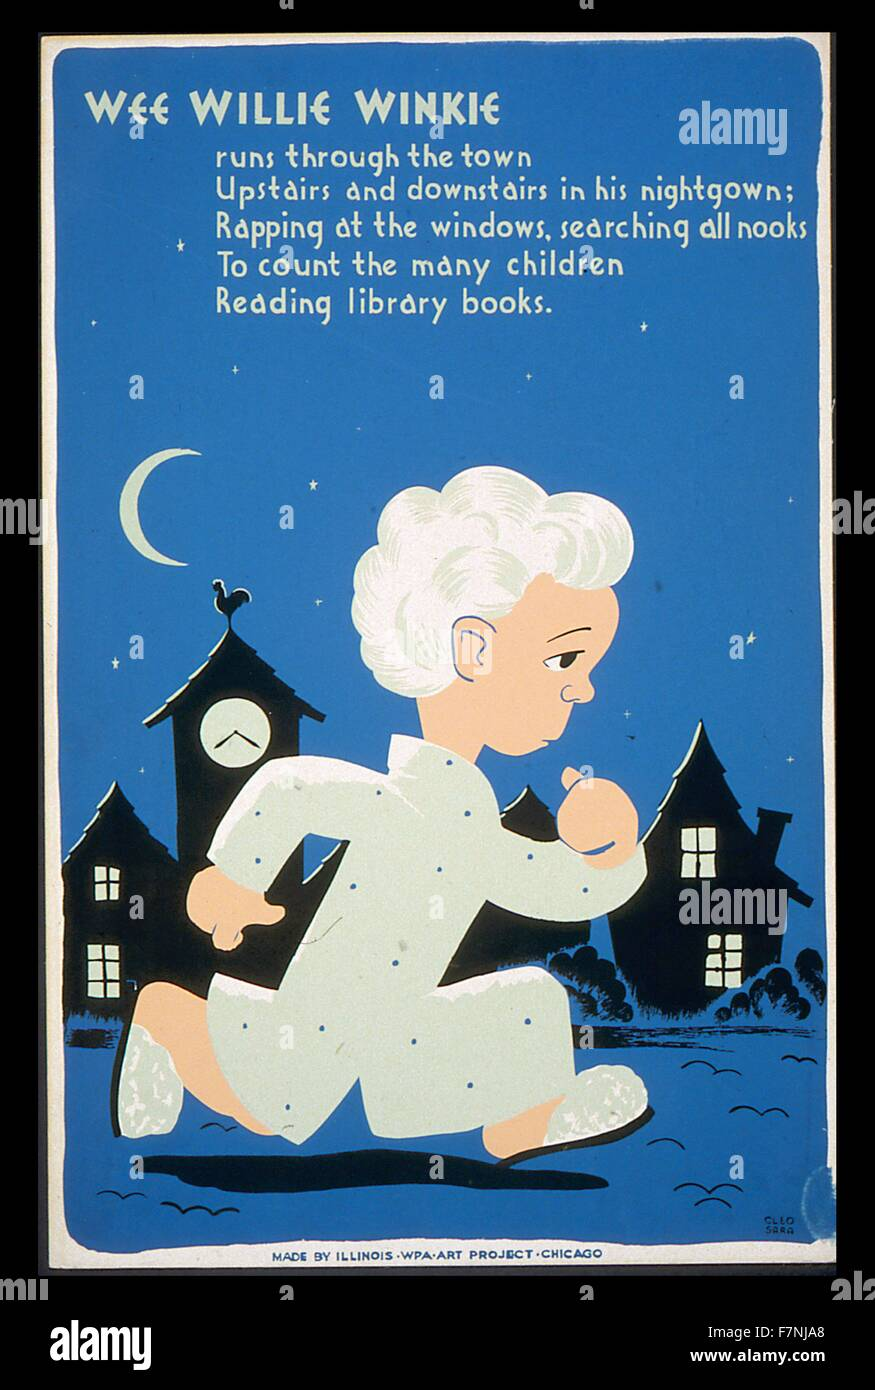 Wee Willie Winkie runs through the town ... to count the many children reading library books by Cleo Sara [1940]: - Stock Image